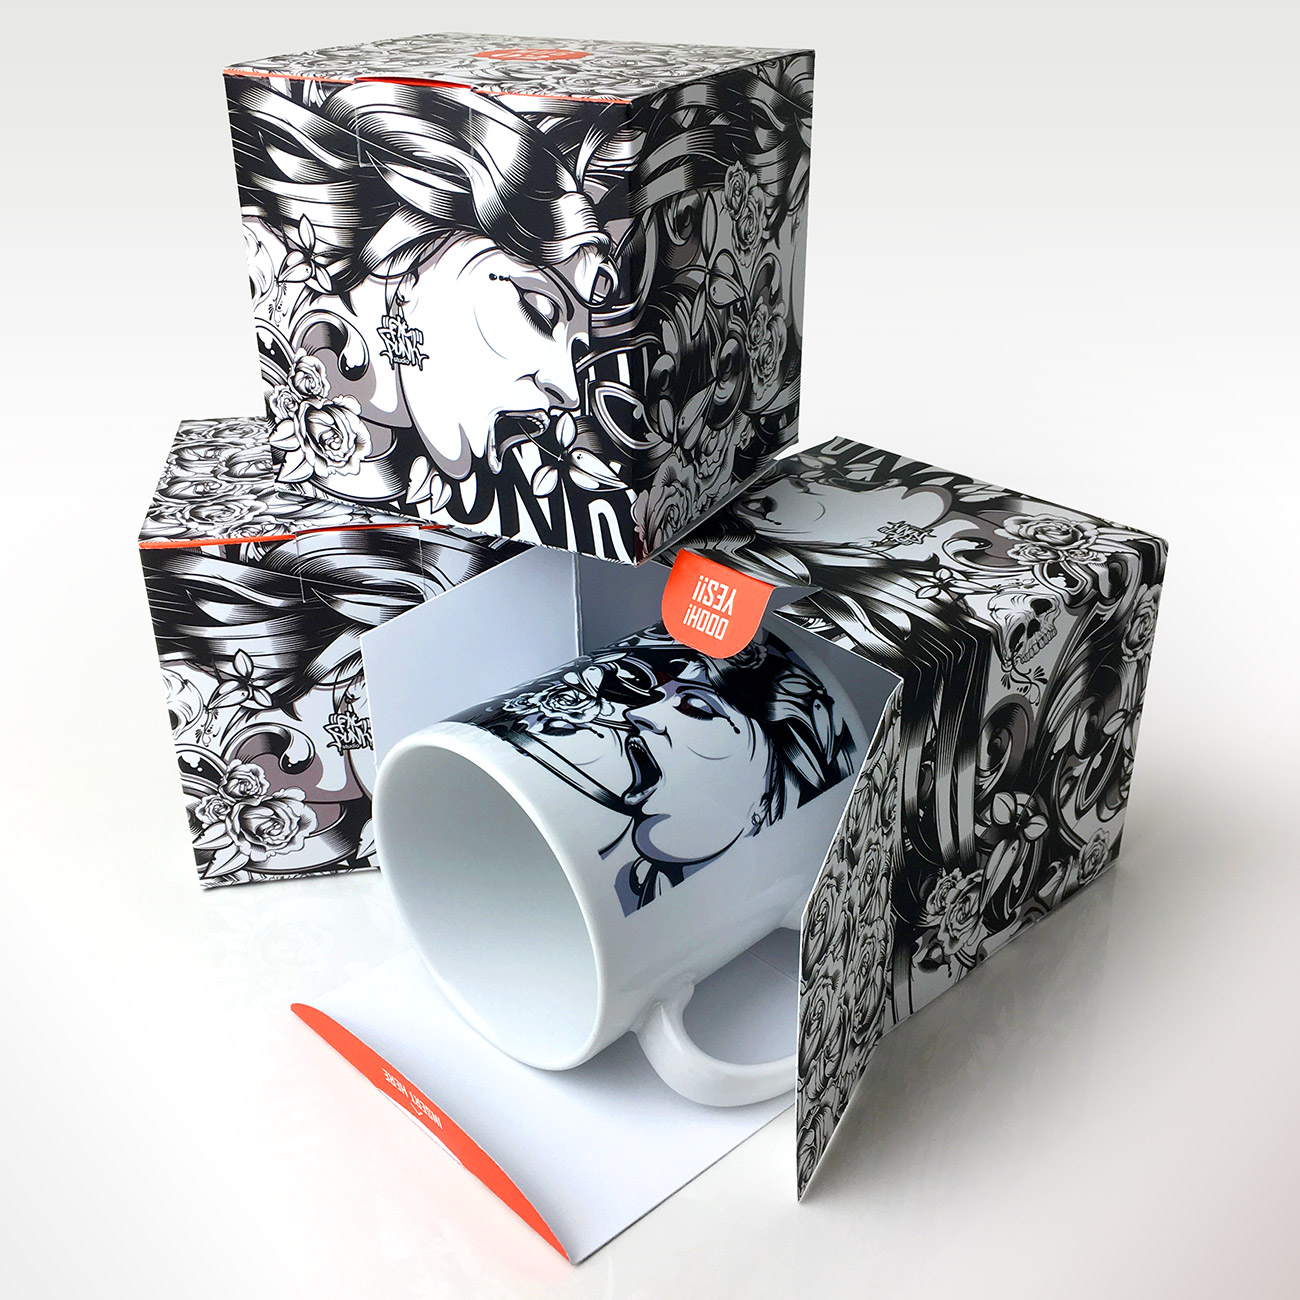 02 Box Mug & Gift Box (set 02) - Fat Punk Studio